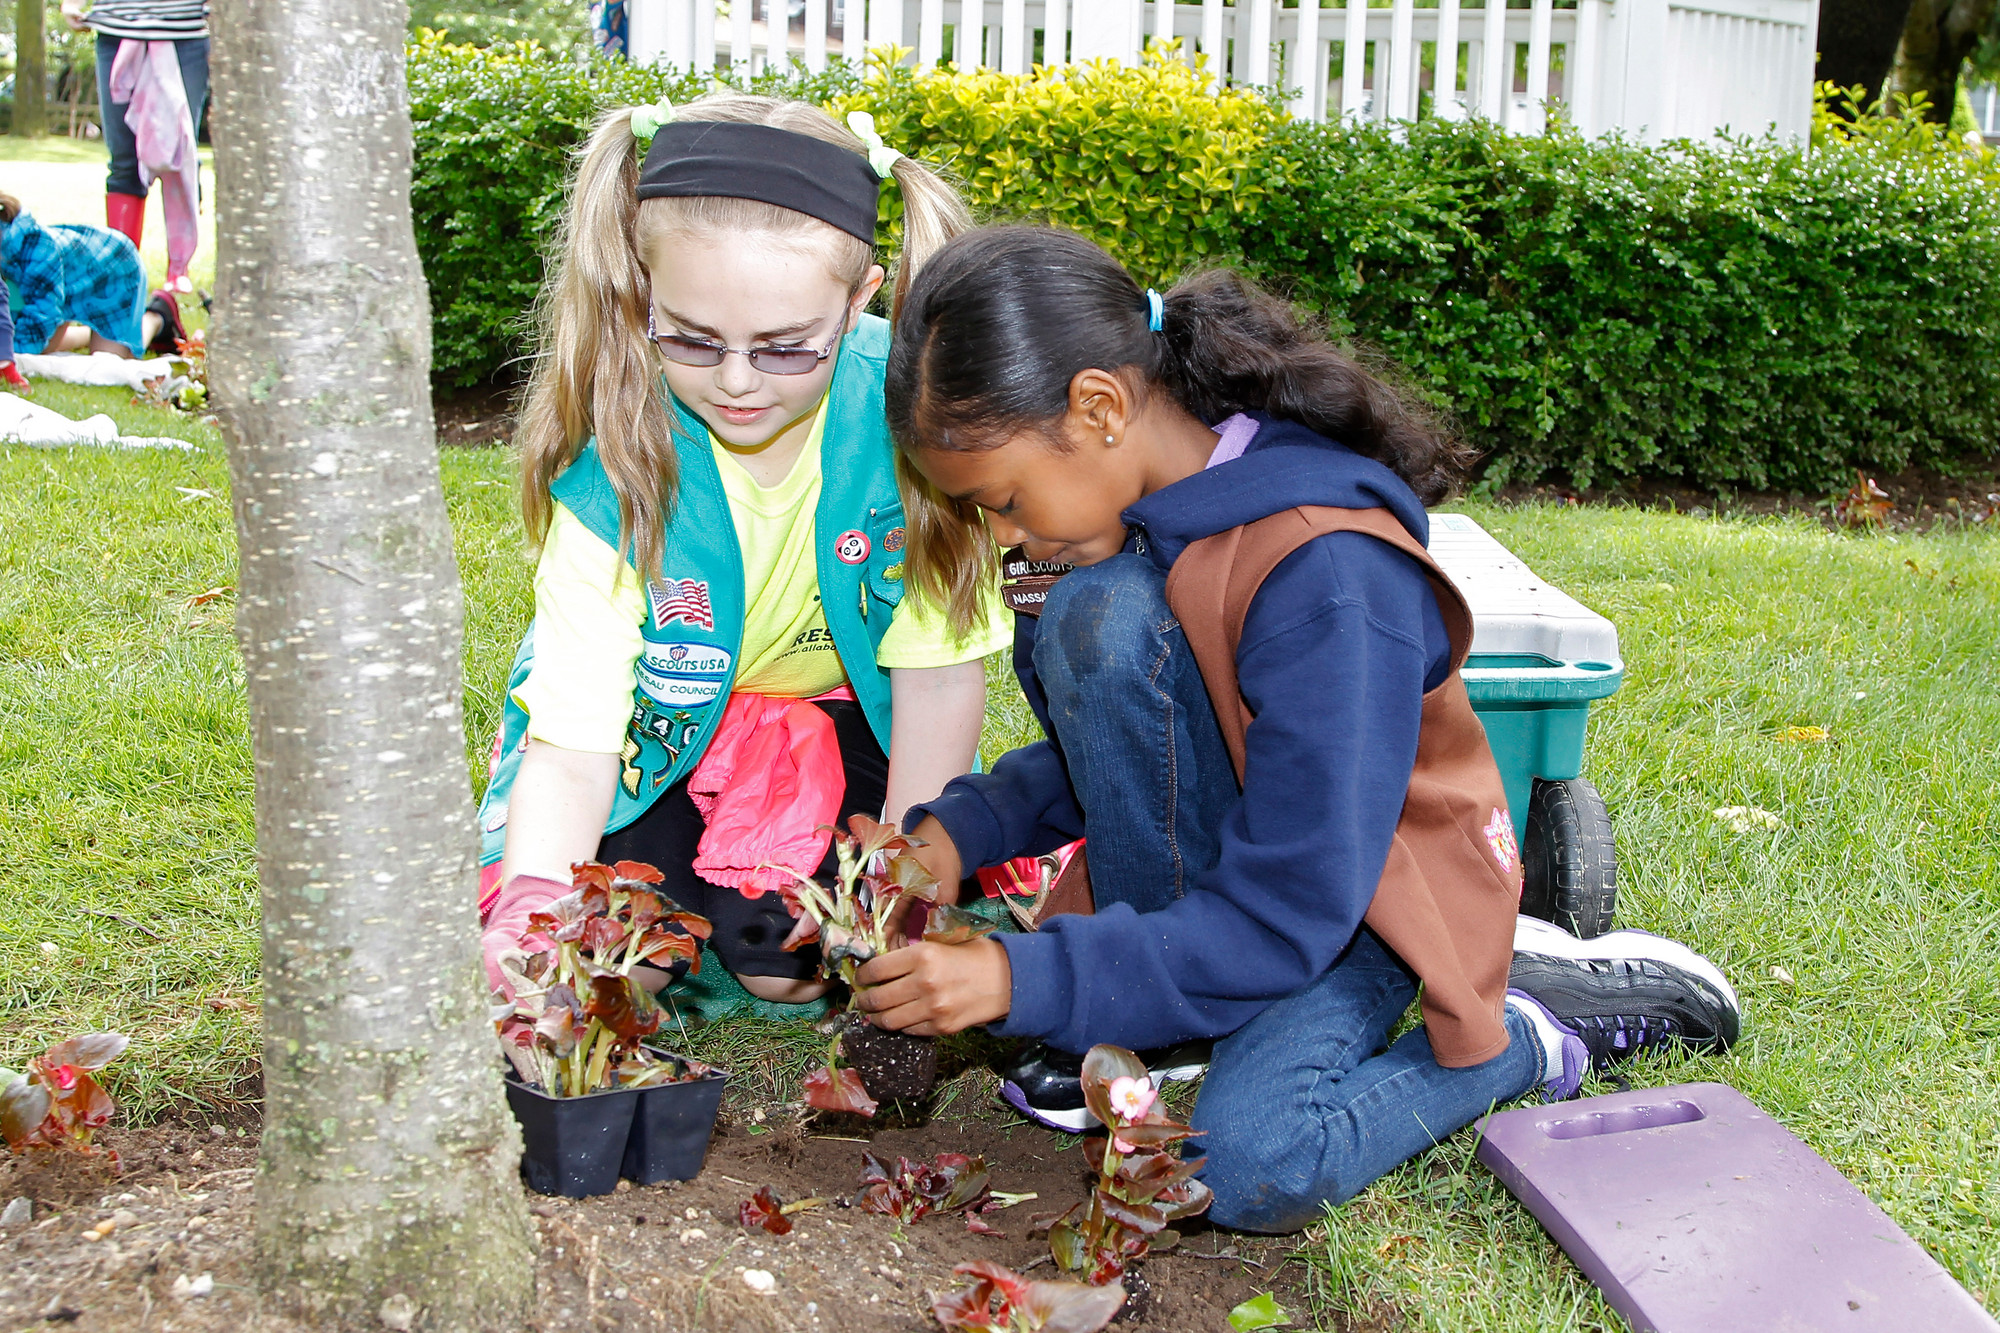 10-year old Catherine Farrell, left, from Troop 840, and 8-year-old Damaris Linsay, from Troop 814, were hard at work putting in plants for the Village Green beautification project.